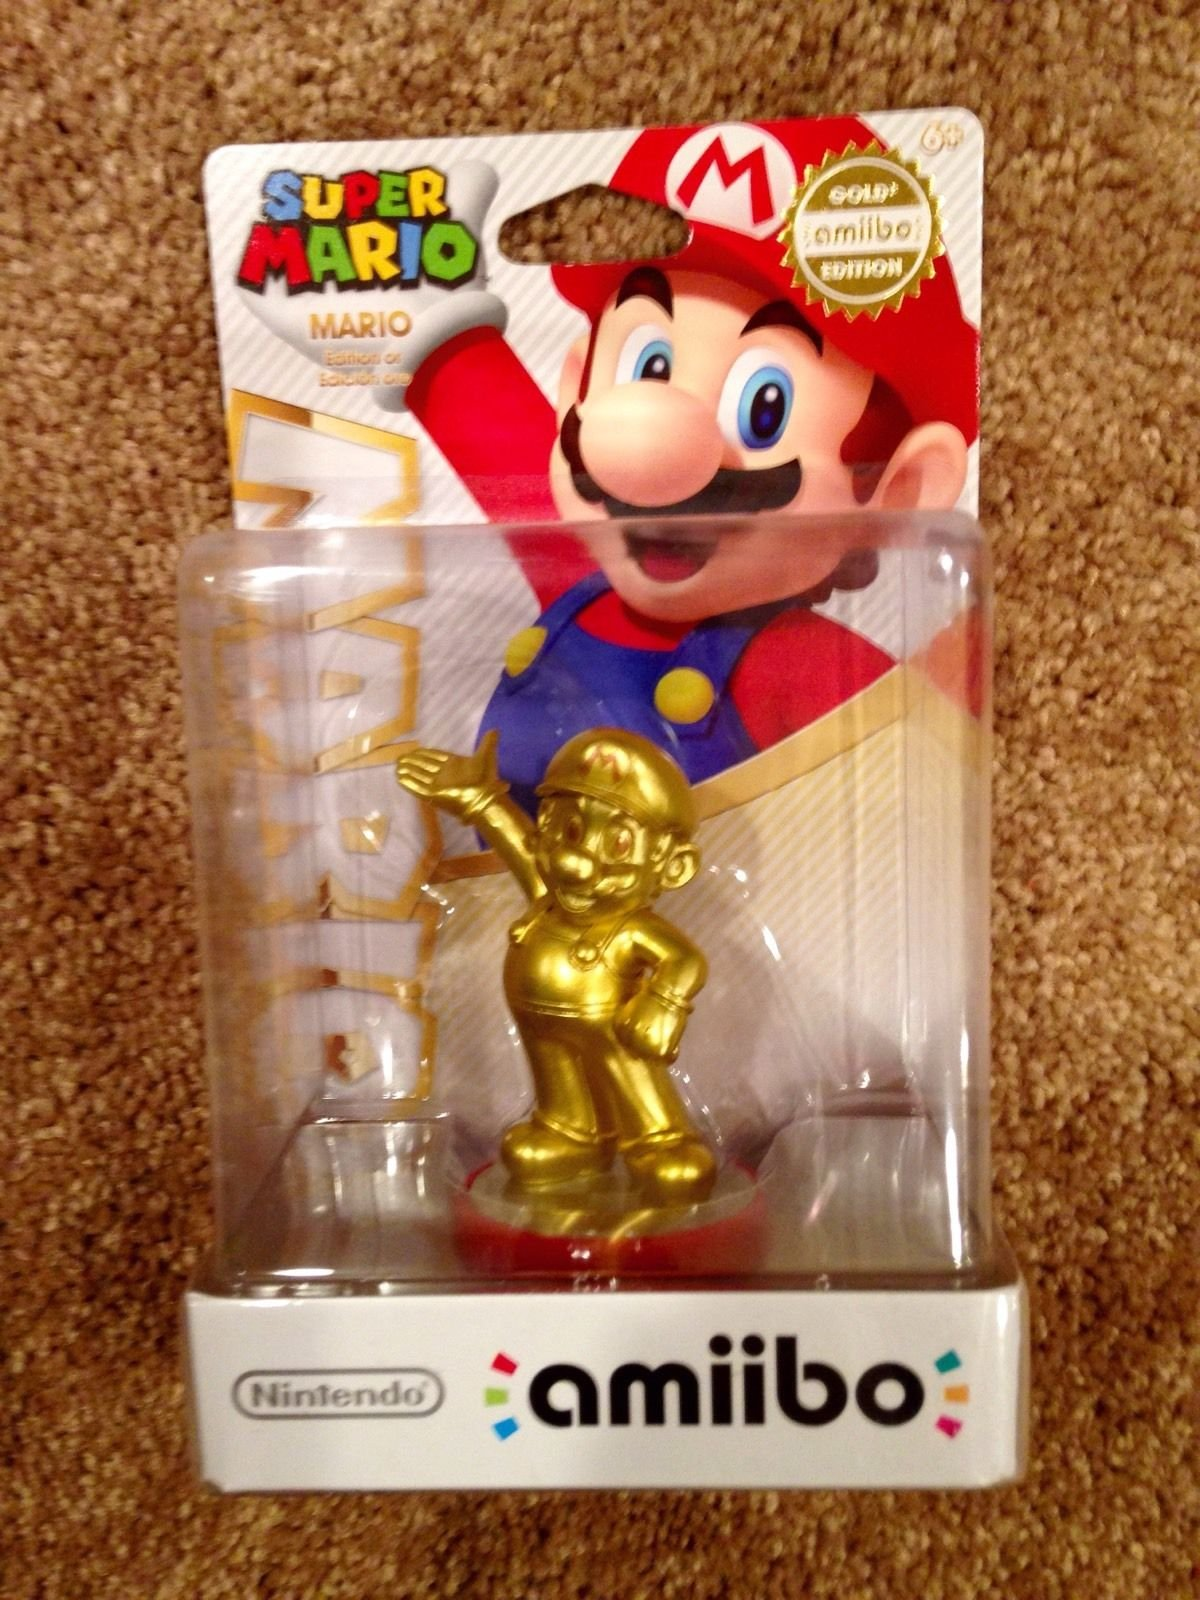 Mario - Gold amiibo (Super Mario Bros Series) by Nintendo